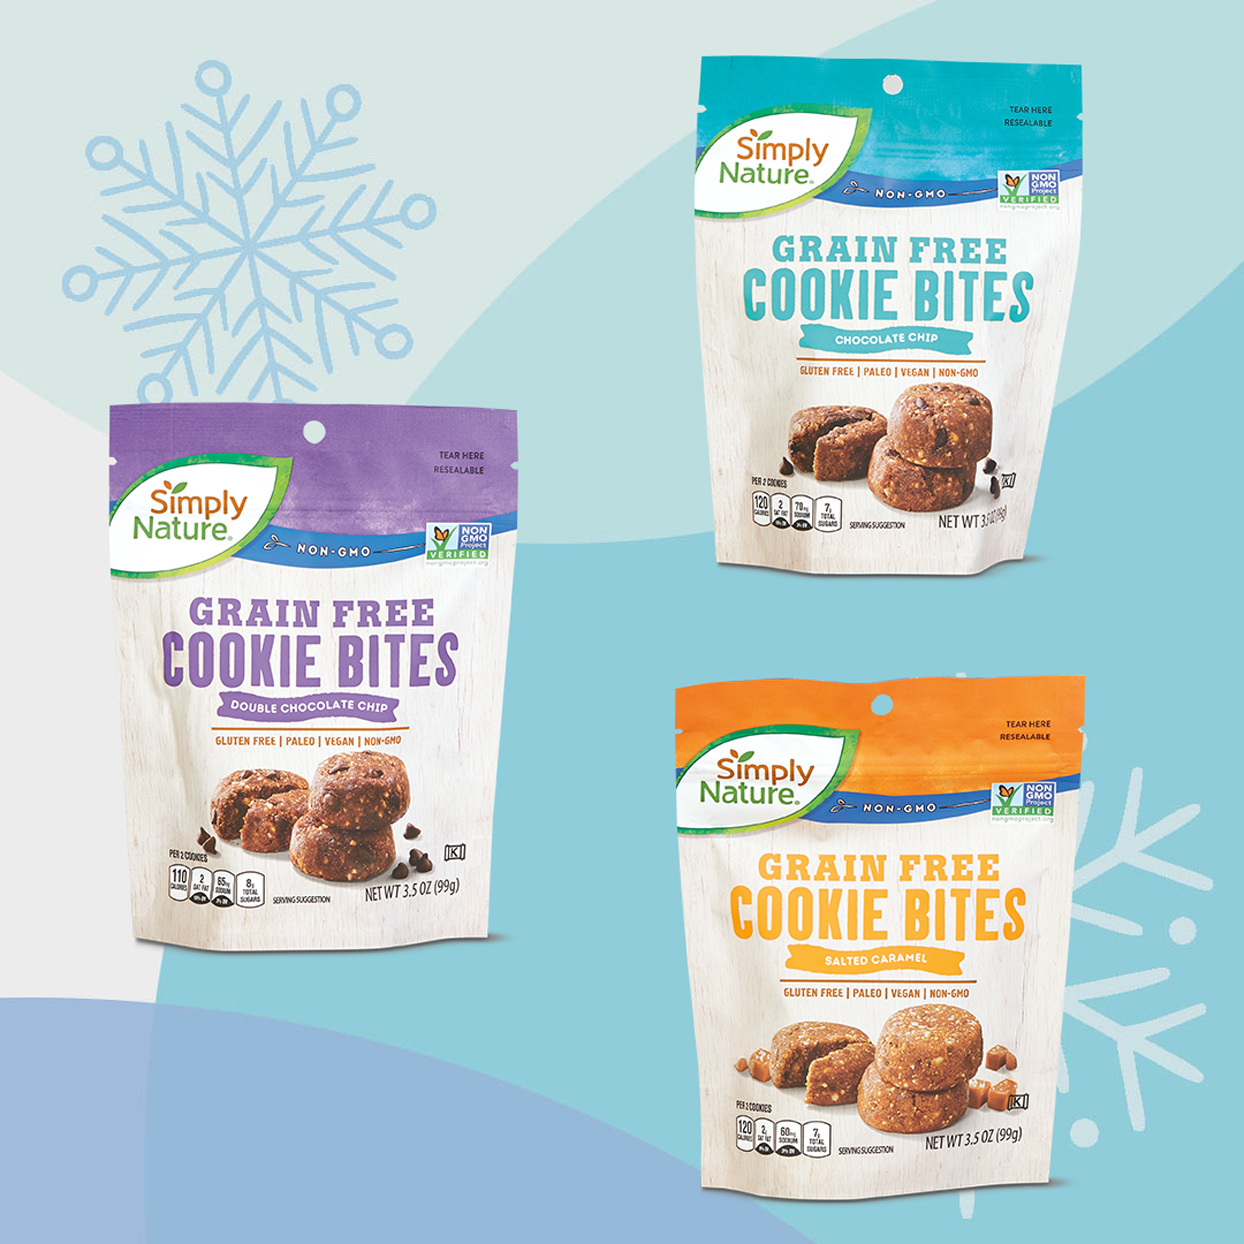 Simply Nature brand Grain Free Cookie Bites